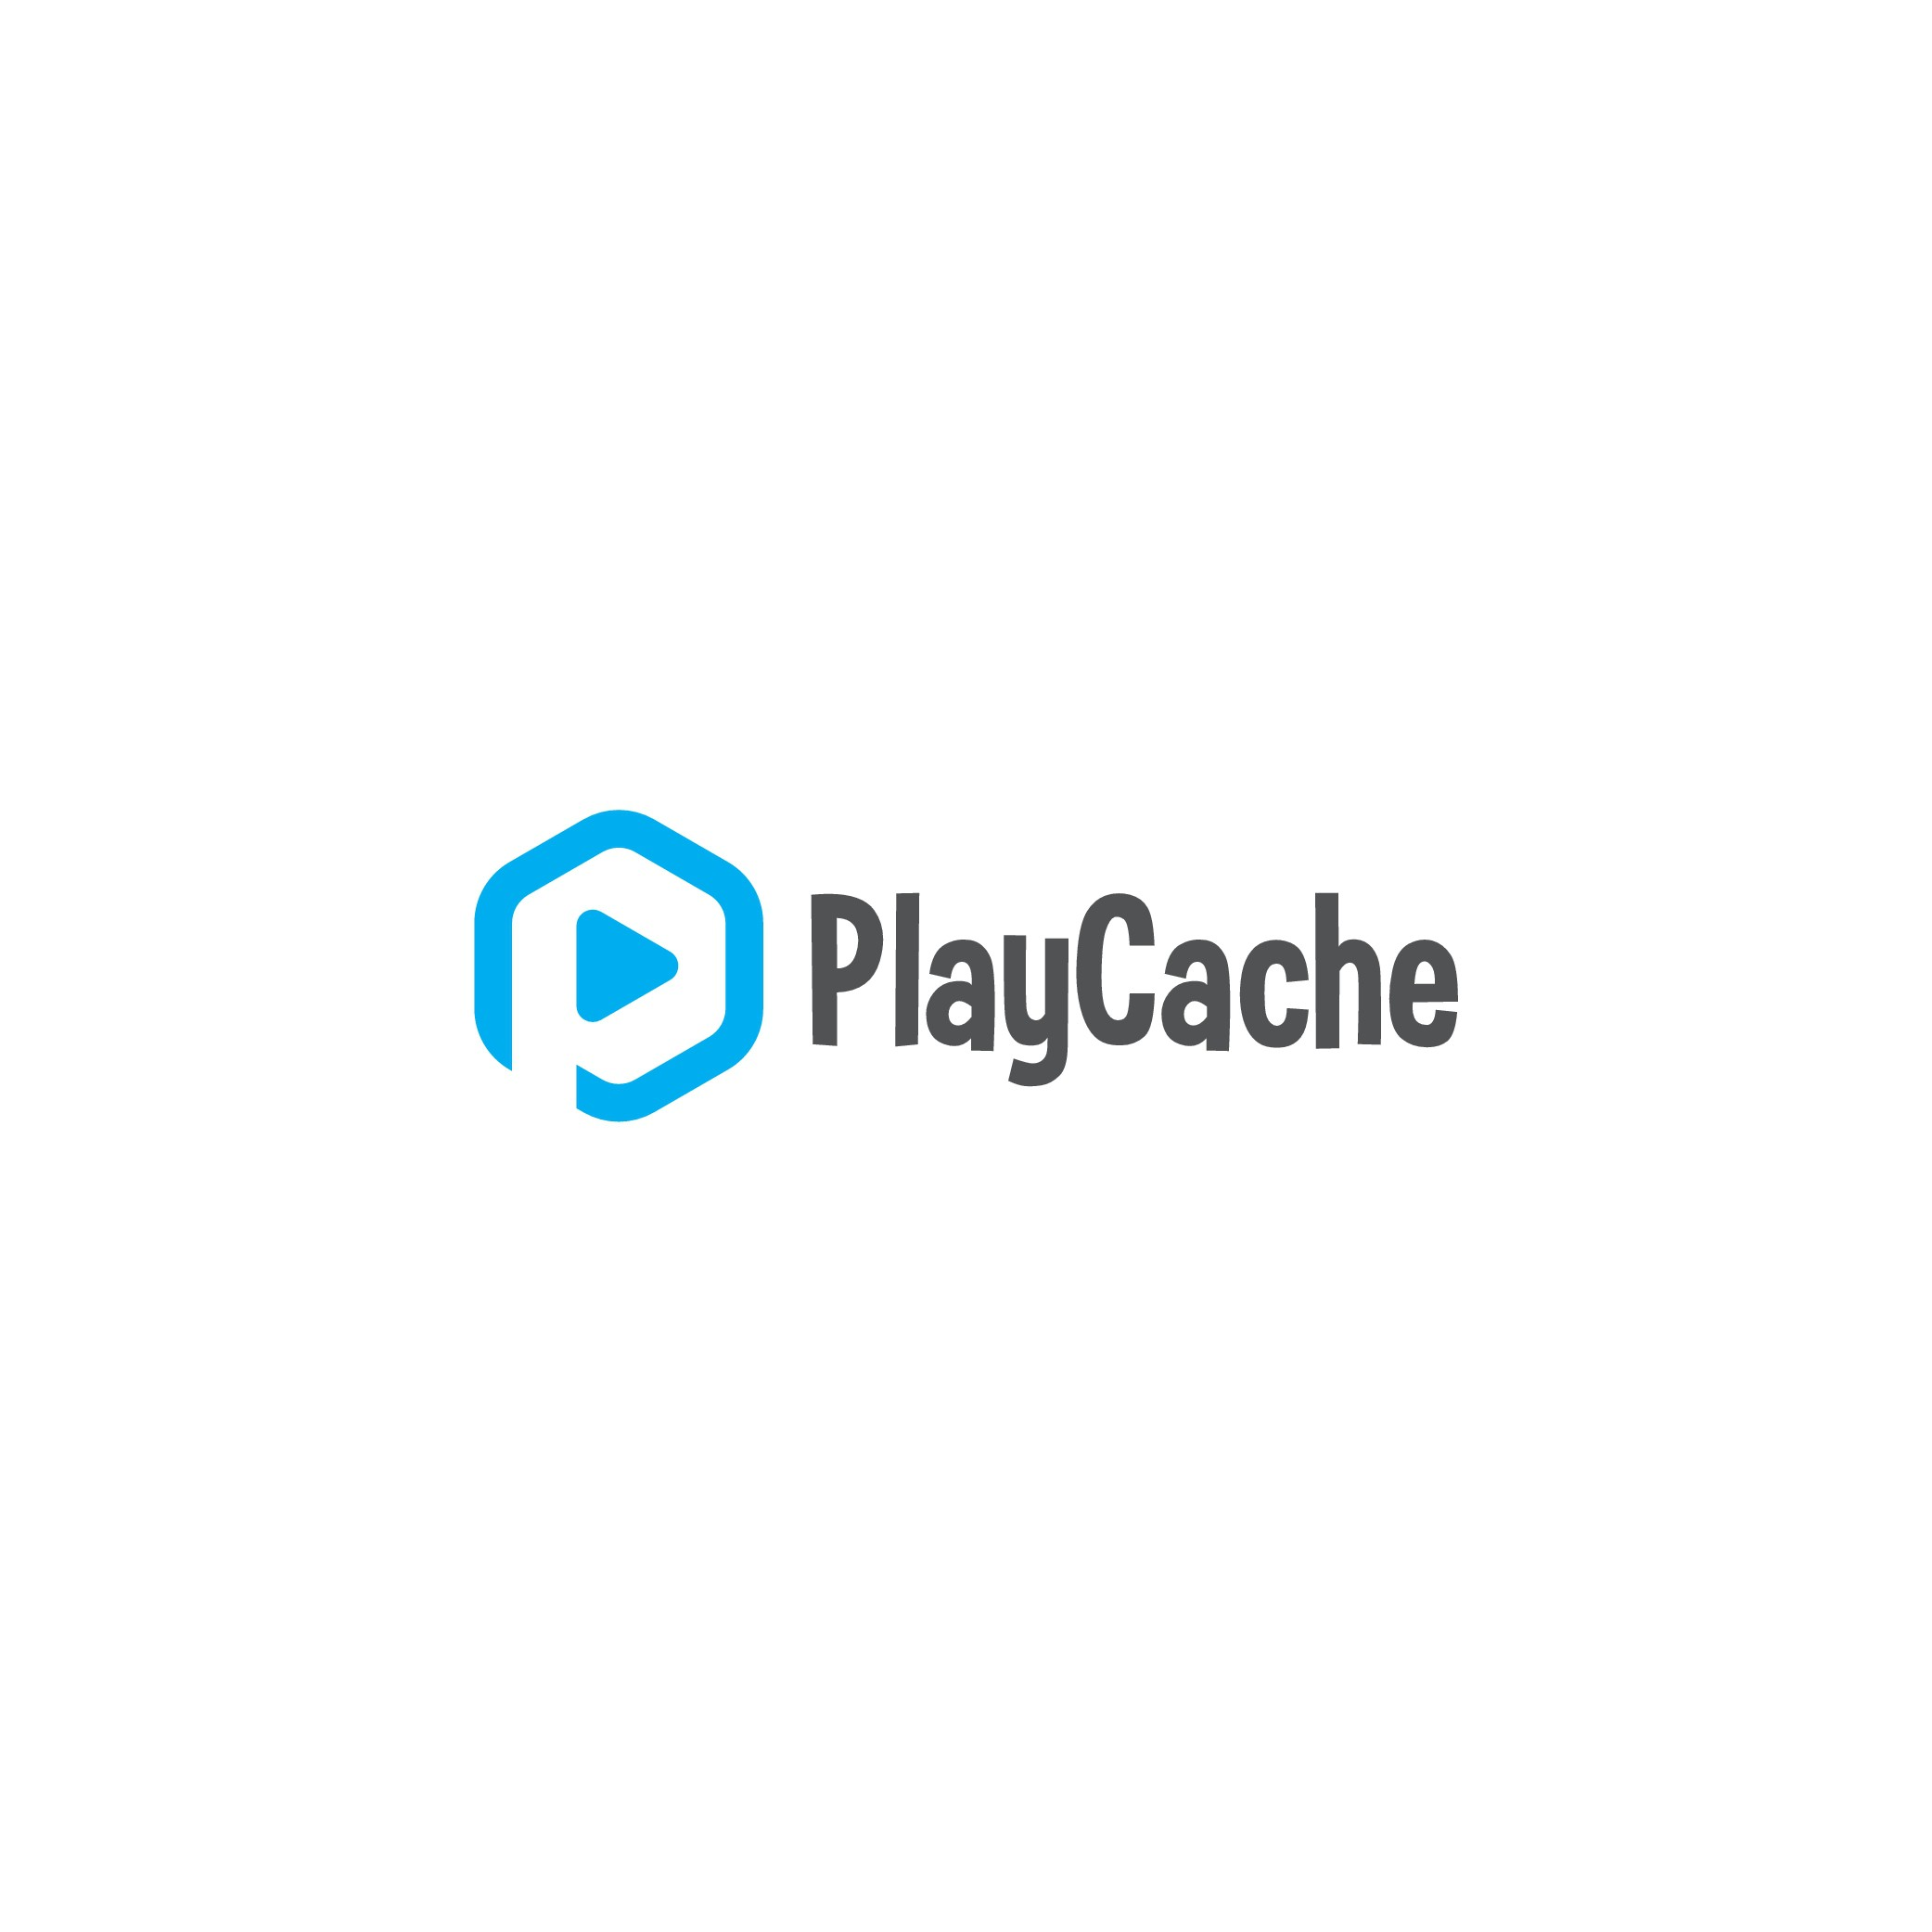 Create a fun mobile publisher logo for PlayCache